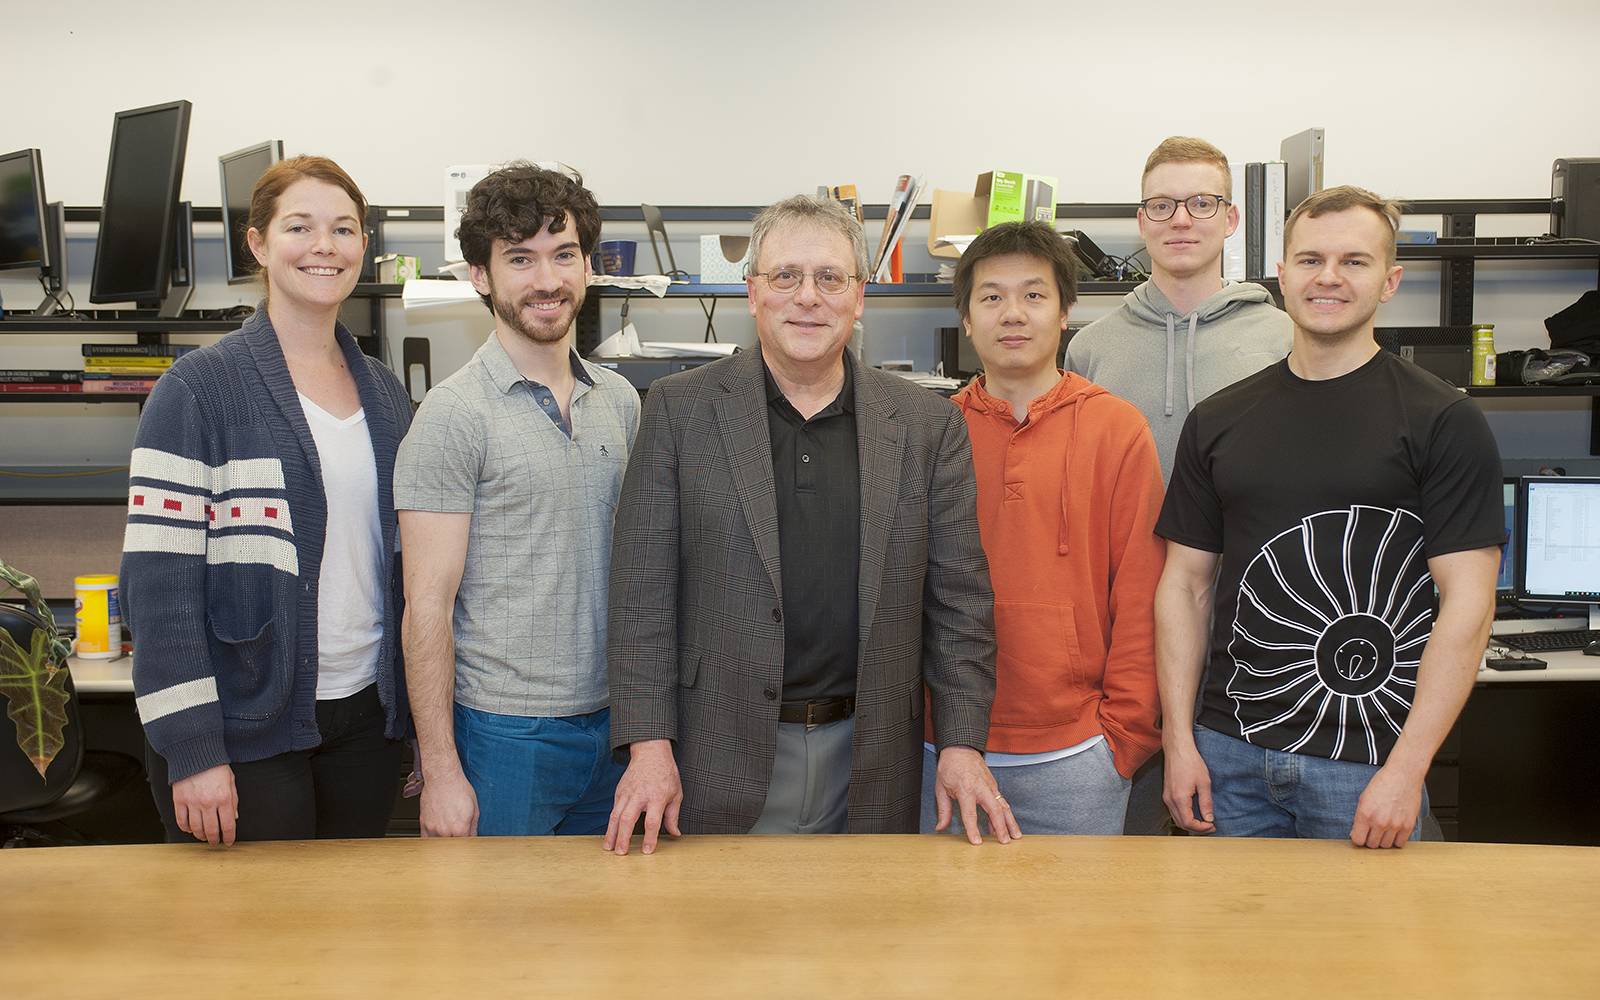 Professor David McDowell with students during a National Robotics Week tour of his lab in 2018. Pictured (L-R): Adrienne Muth, Aaron Tallman, McDowell, Dengke Chen, Theodore Zirkle, and Krzysztof Stopka.